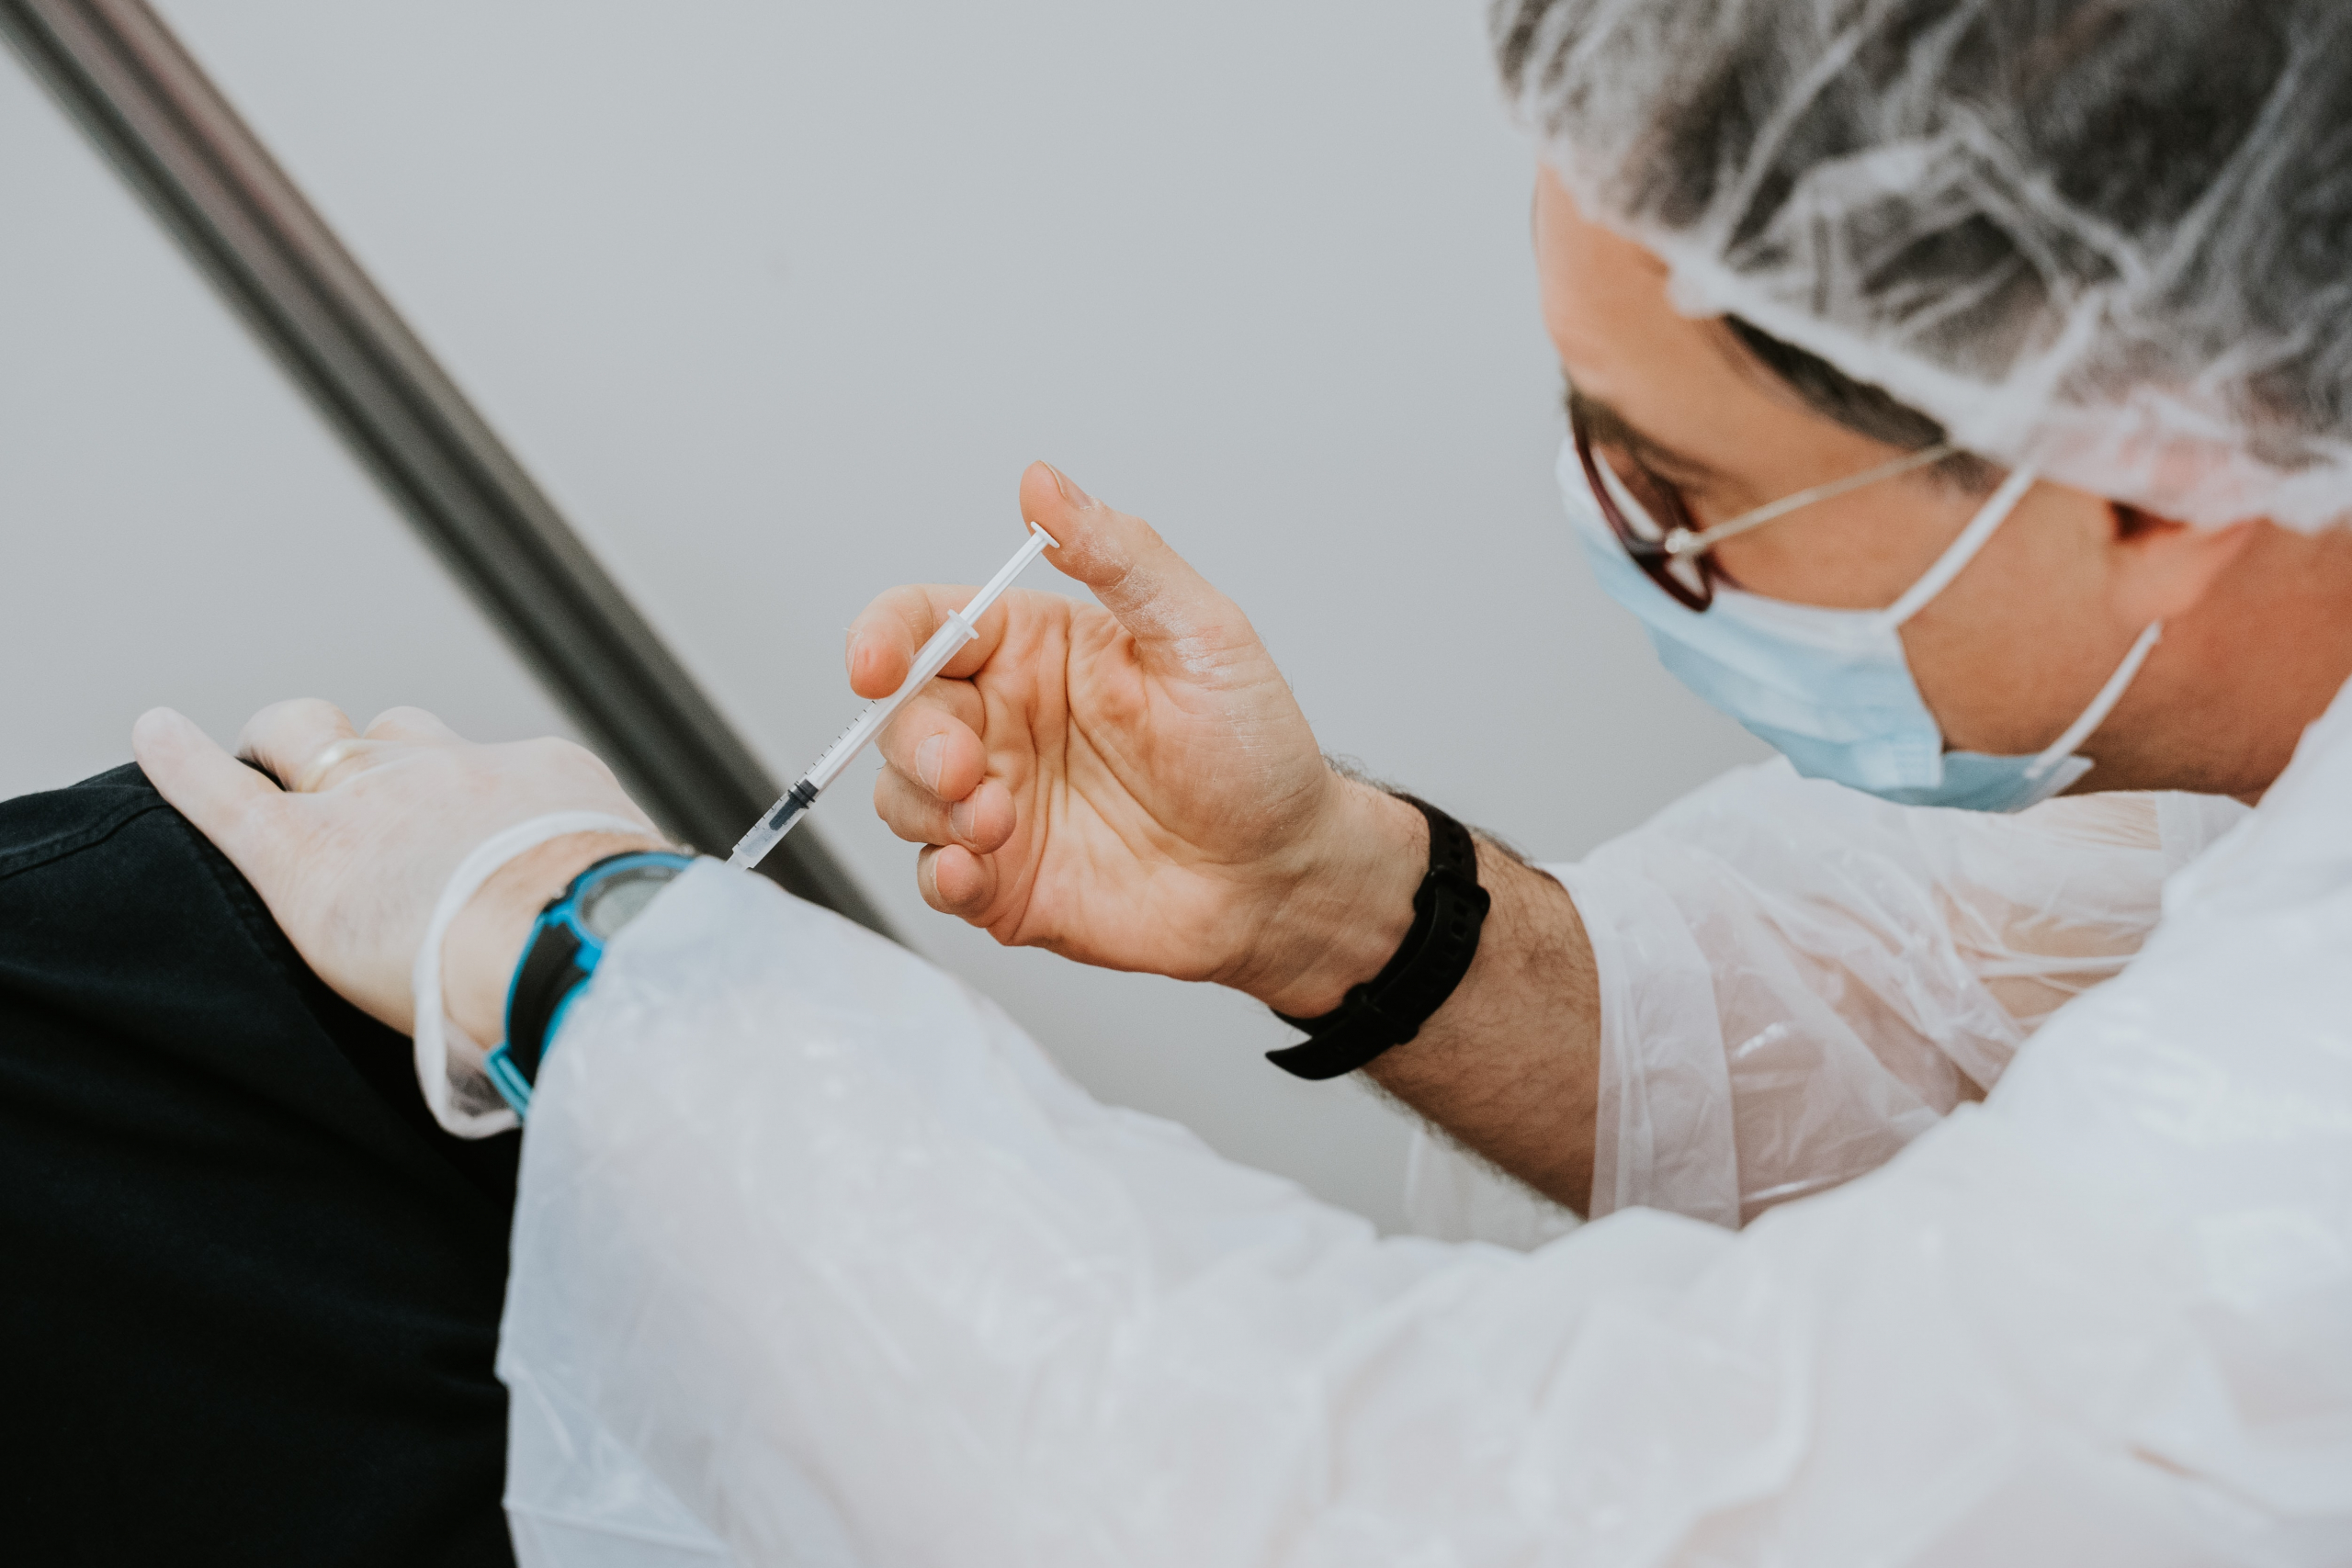 UK vaccine rollout is full steam ahead